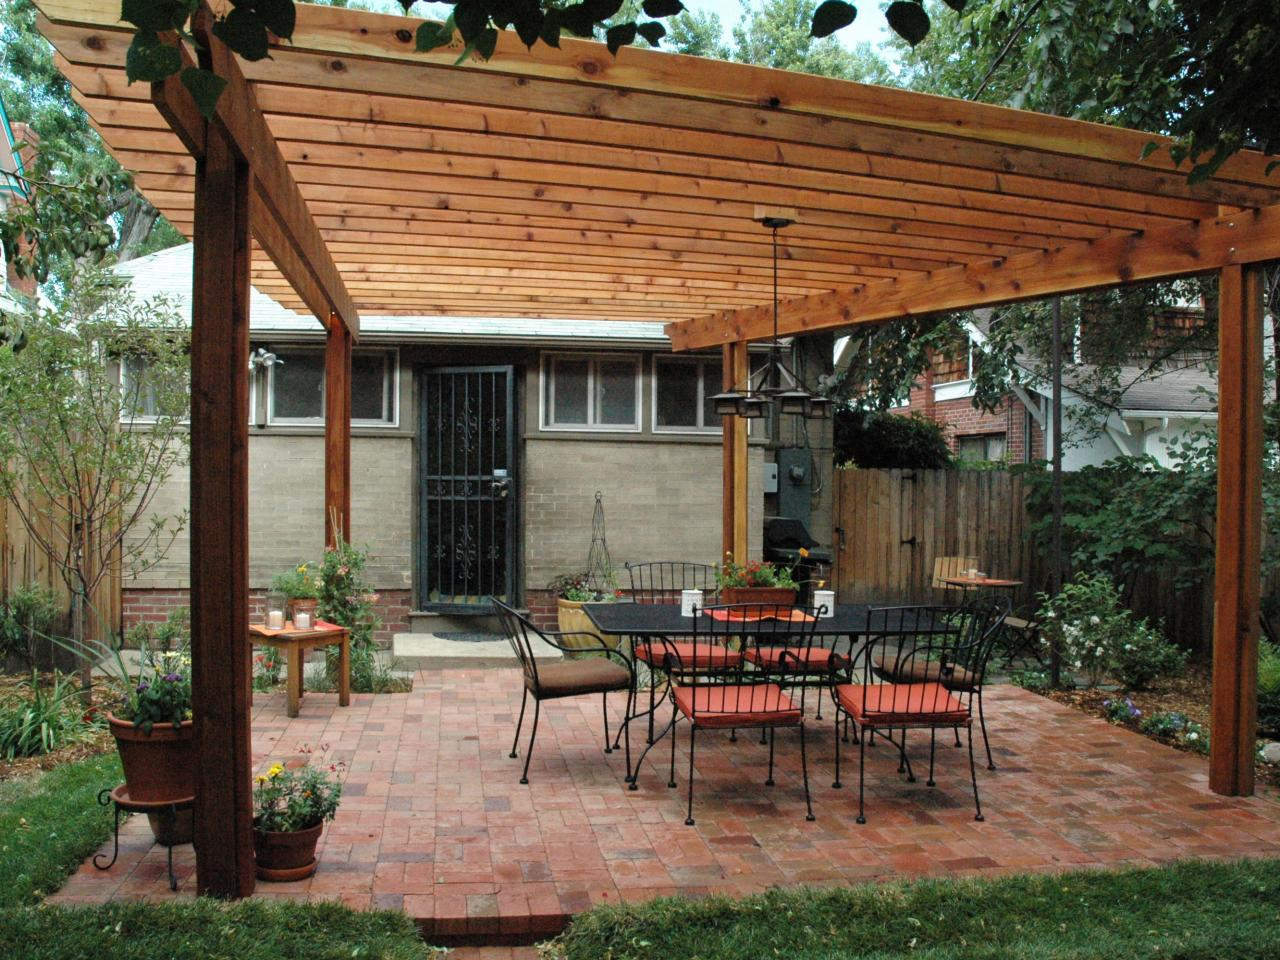 Arbor Installation-Midland TX Professional Landscapers & Outdoor Living Designs-We offer Landscape Design, Outdoor Patios & Pergolas, Outdoor Living Spaces, Stonescapes, Residential & Commercial Landscaping, Irrigation Installation & Repairs, Drainage Systems, Landscape Lighting, Outdoor Living Spaces, Tree Service, Lawn Service, and more.